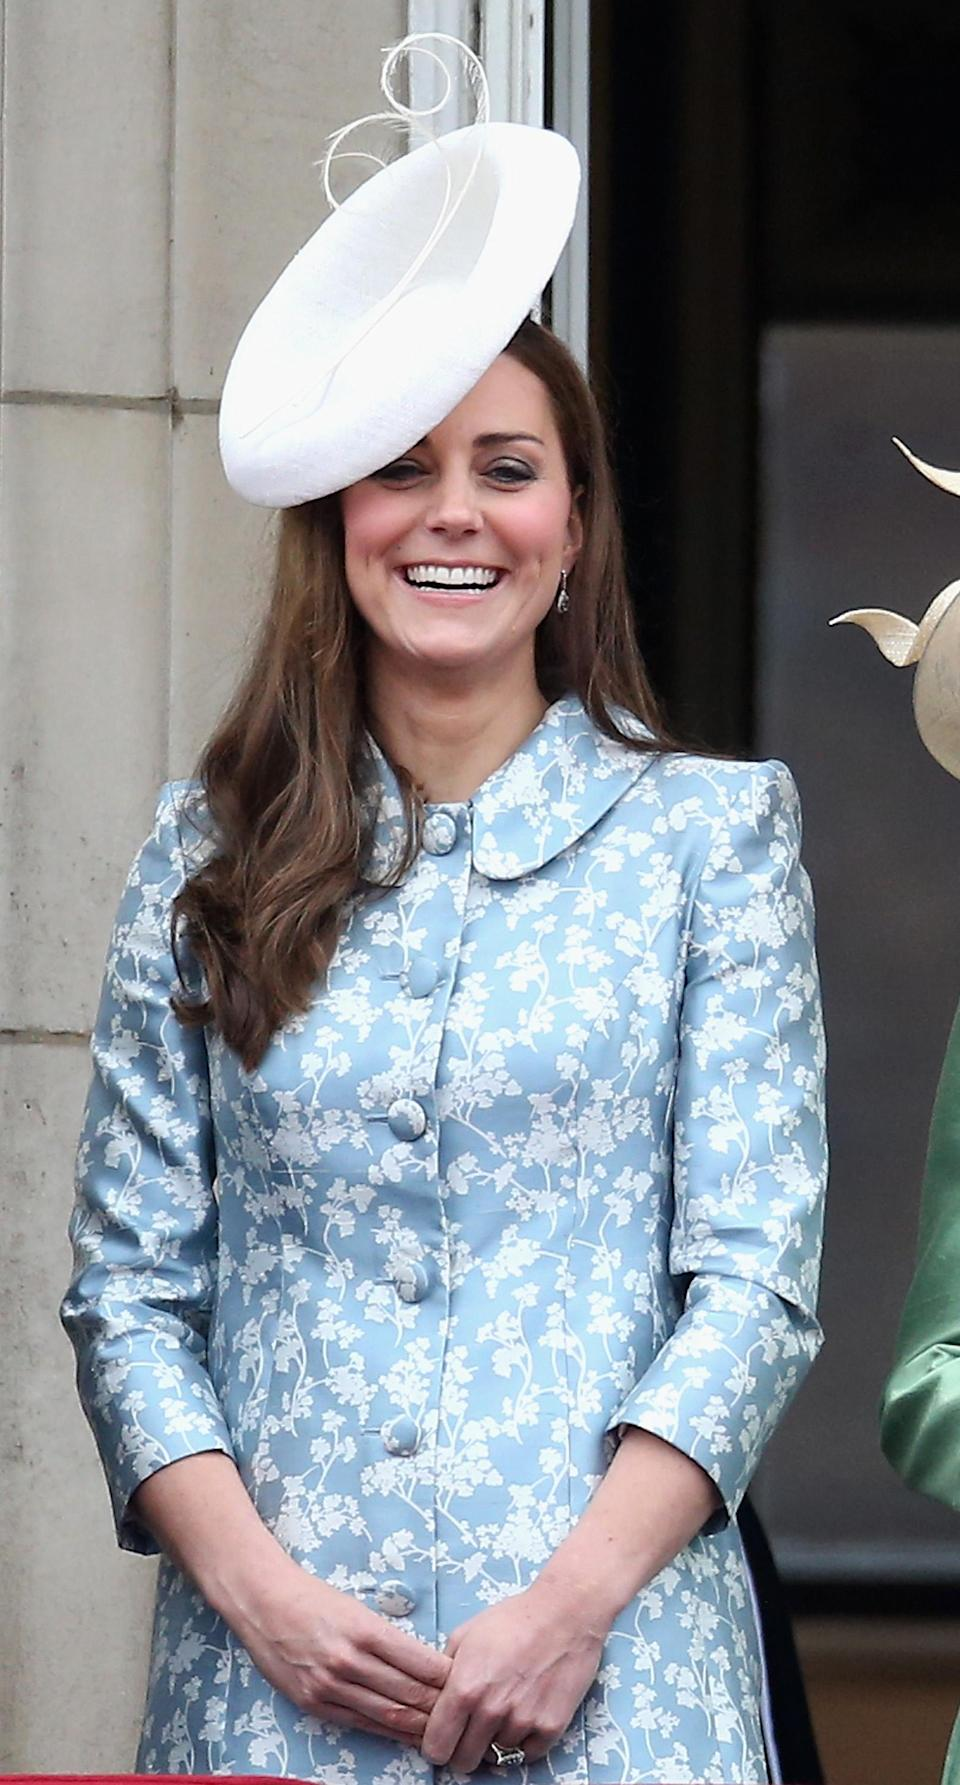 Shortly after Prince George's birth, the Duchess of Cambridge donned a custom-made co-ord by Alexander McQueen. She accessorised the look with a Lock & Co fascinator. (Getty Images)